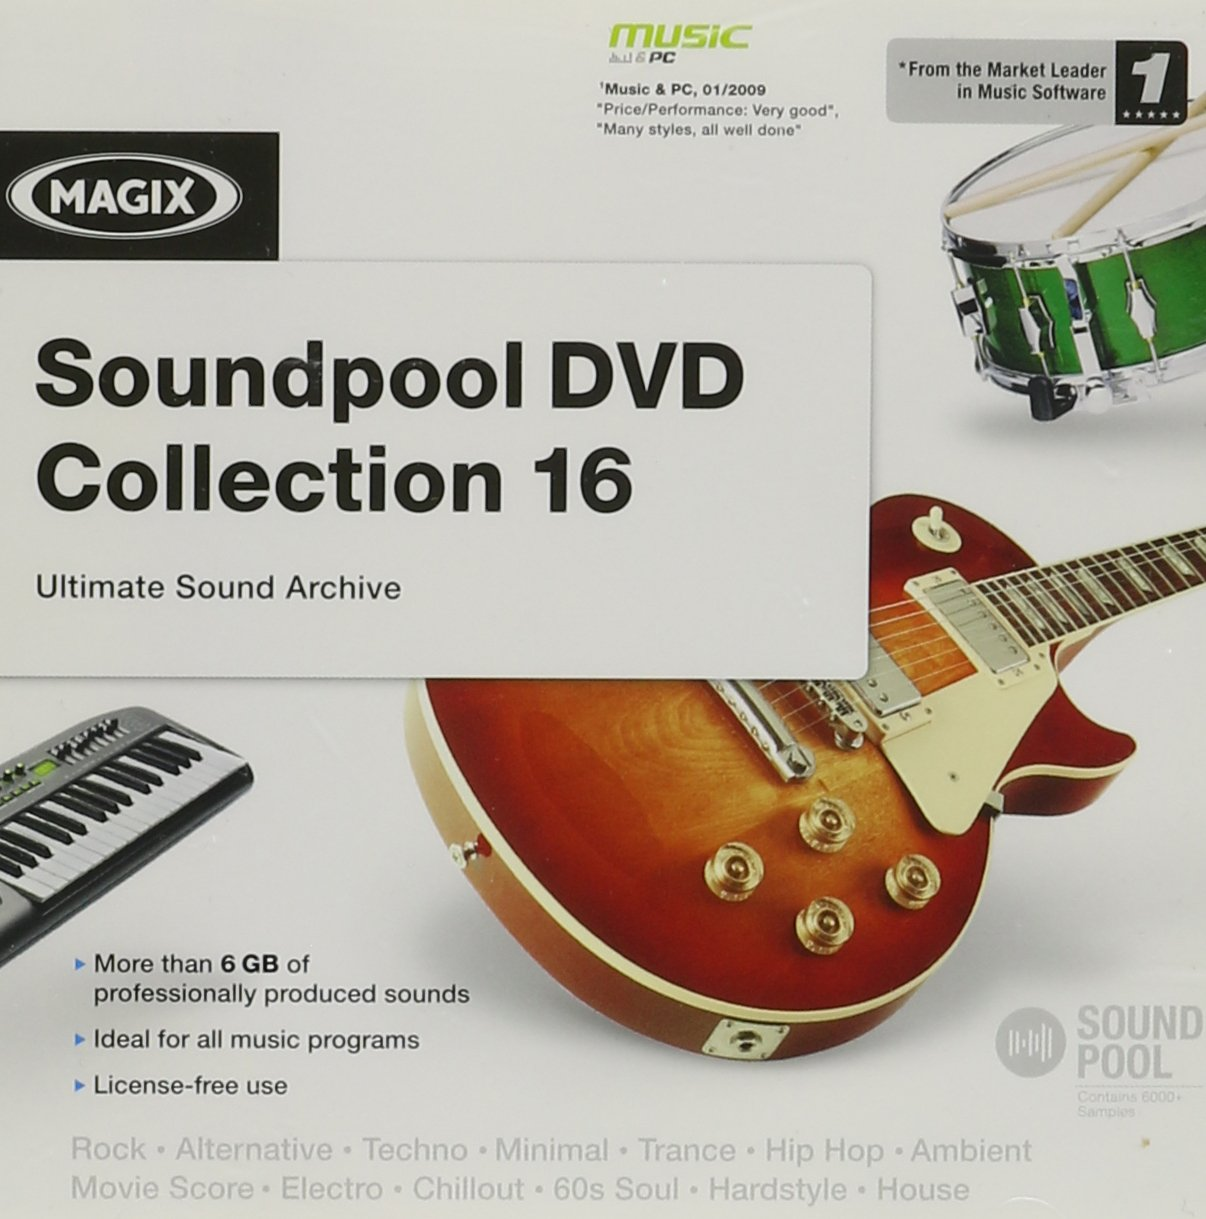 MAGIX Soundpool DVD Collection 16 by MAGIX